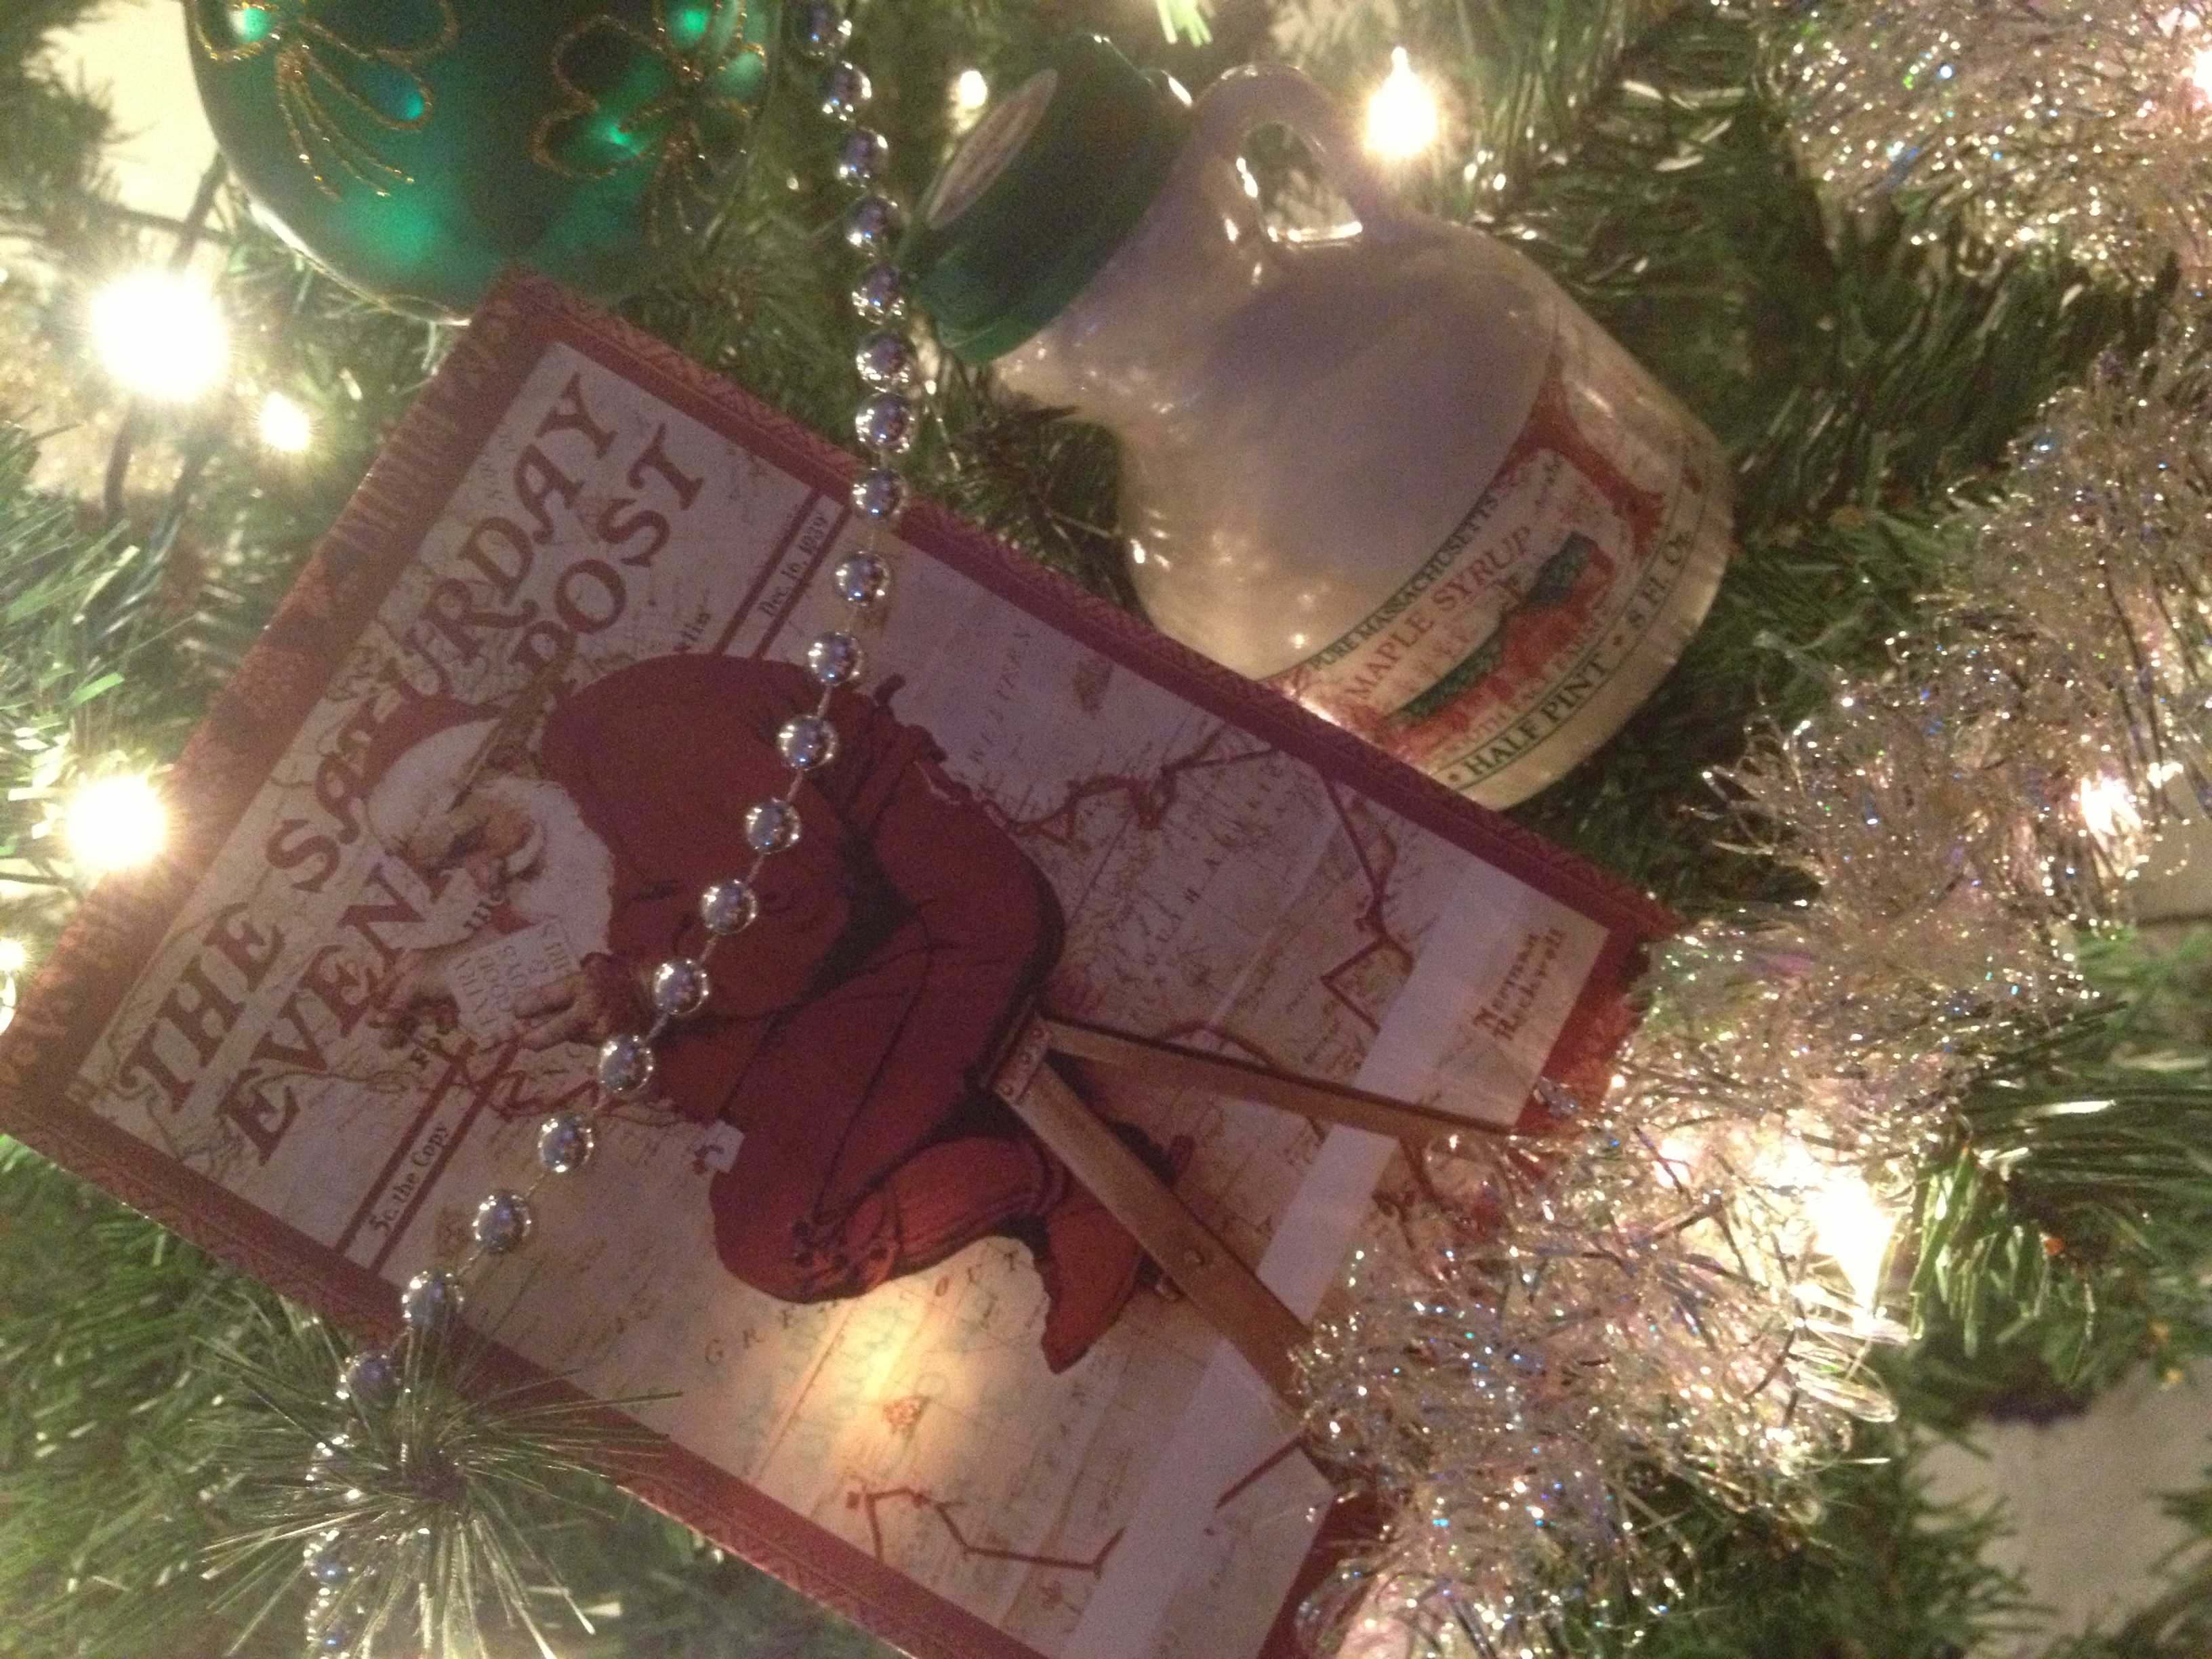 I got my gift from Alesia in Massachusetts today. She sent a cool Norman Rockwell Christmas card and a great little bottle of maple syrup. I'll have to make some pancakes on New Years Day! -- Travis in Idaho